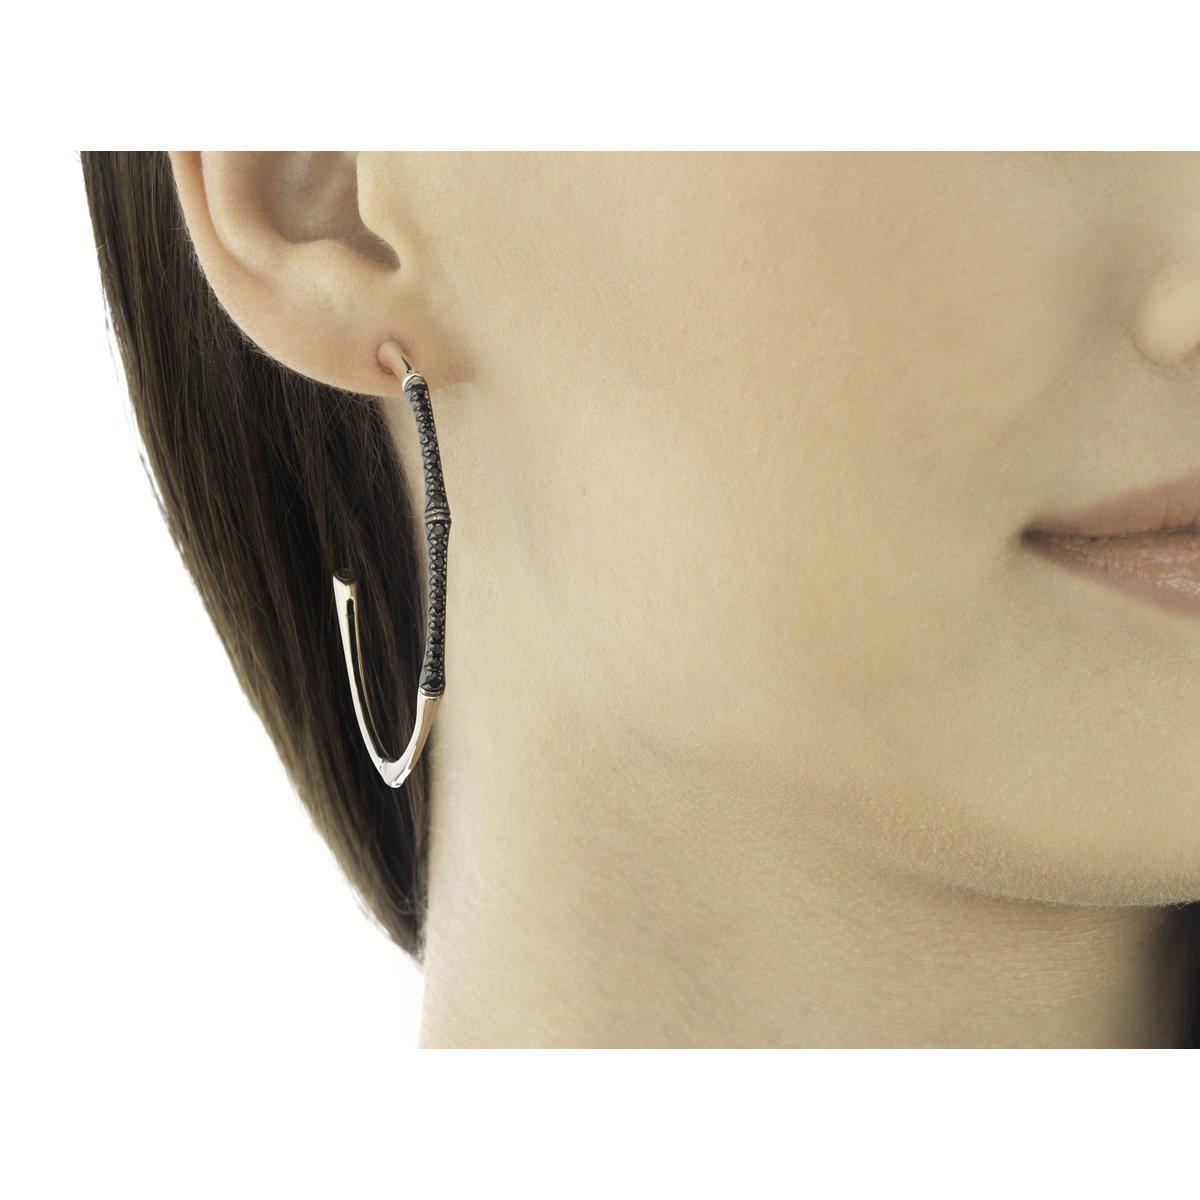 Bamboo Large Hoop Earring with Black Sapphire - EBS57954BLS-John Hardy-Renee Taylor Gallery